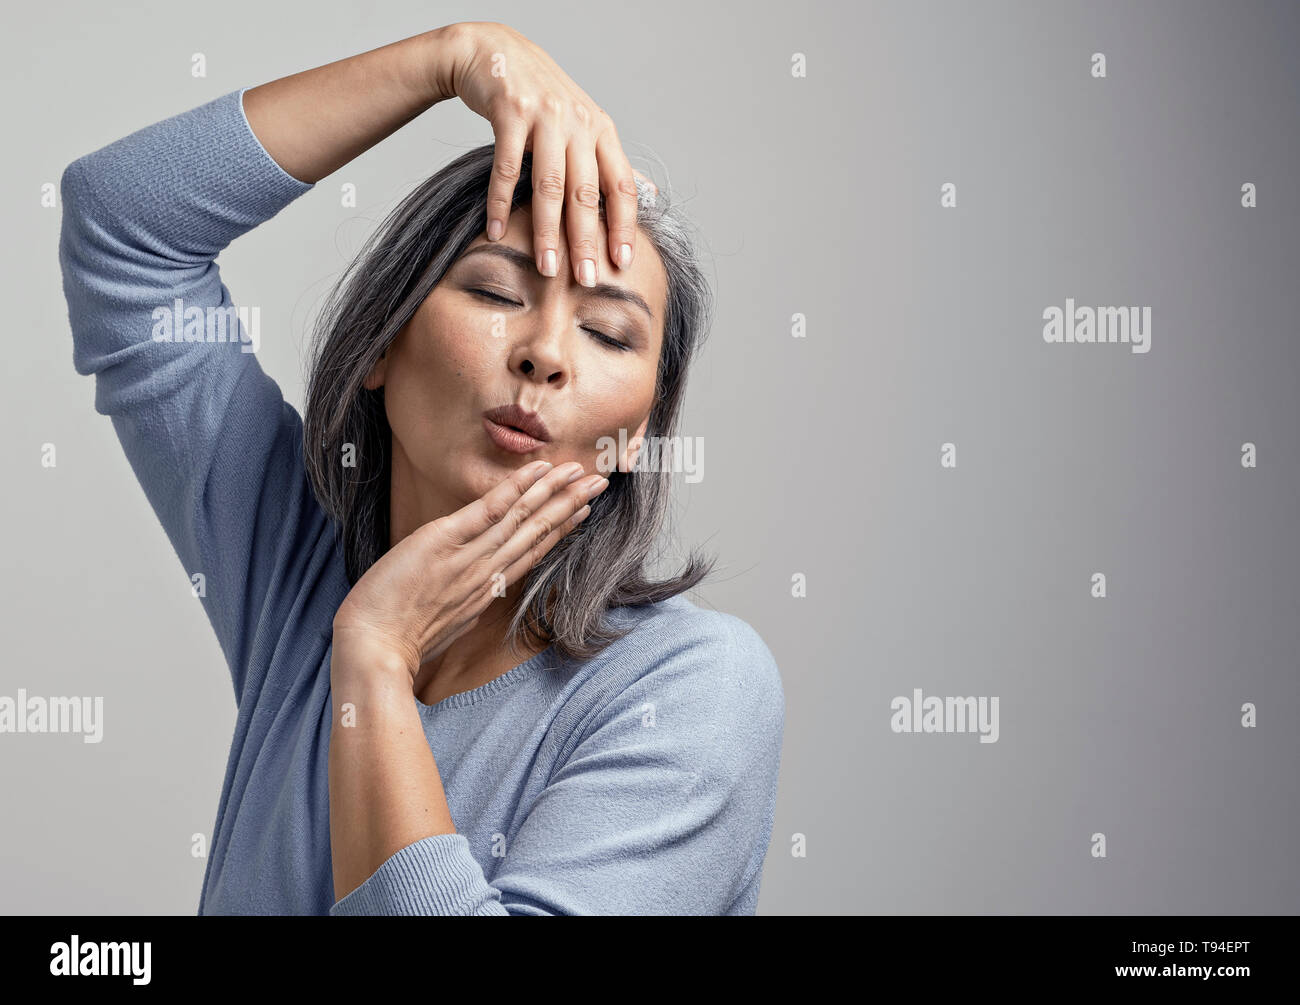 Attractive Asian woman is emotionally posing touching her head with hands - Stock Image